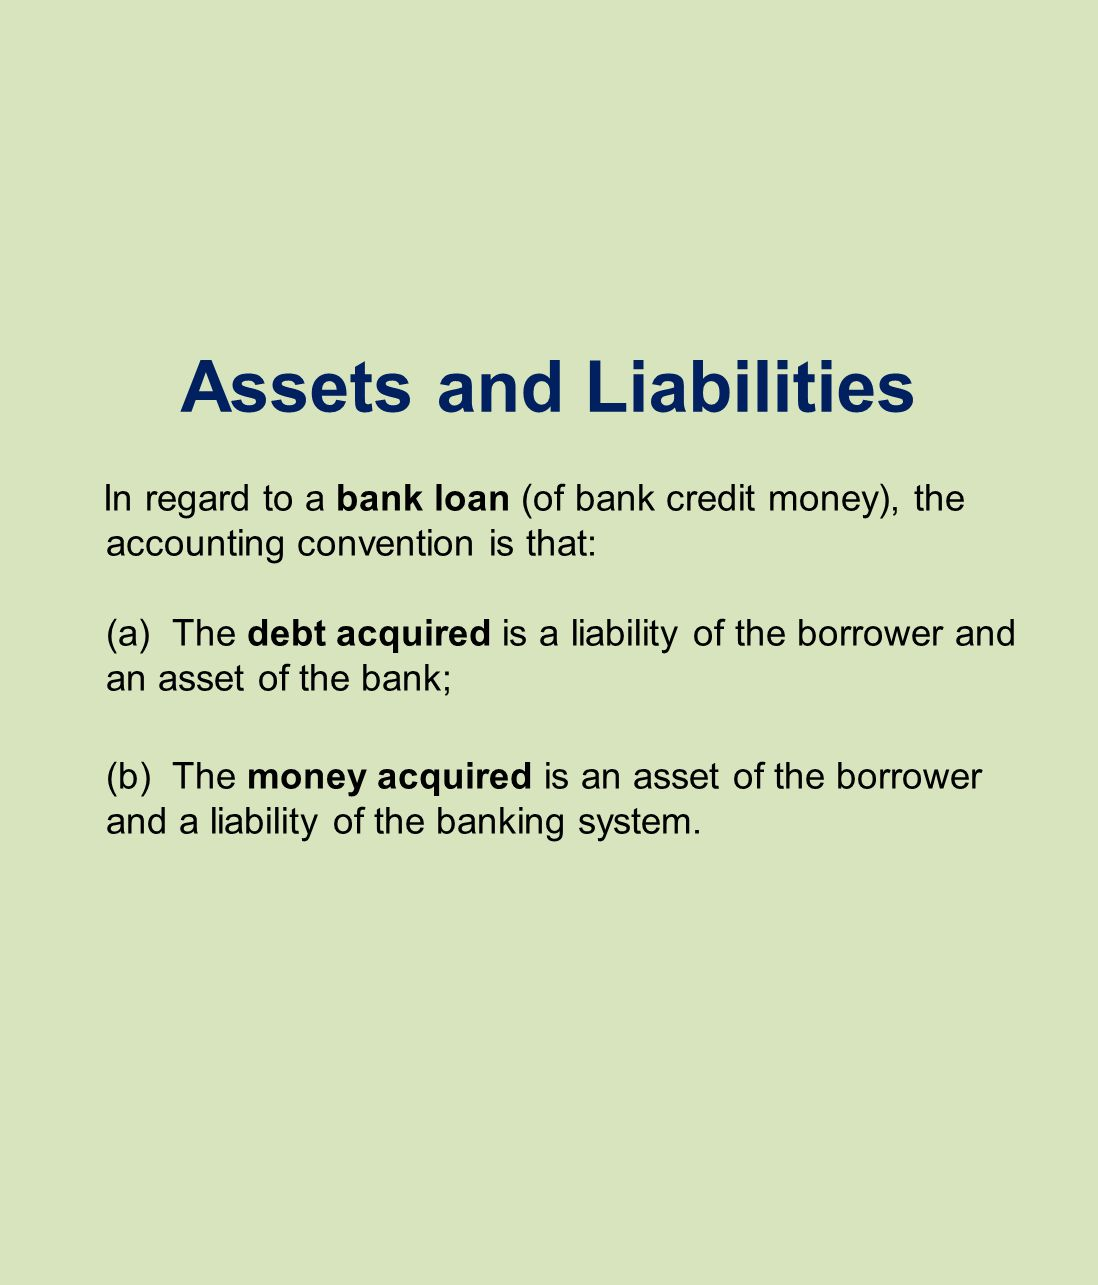 Assets and Liabilities In regard to a bank loan (of bank credit money), the accounting convention is that: (a) The debt acquired is a liability of the borrower and an asset of the bank; (b) The money acquired is an asset of the borrower and a liability of the banking system.